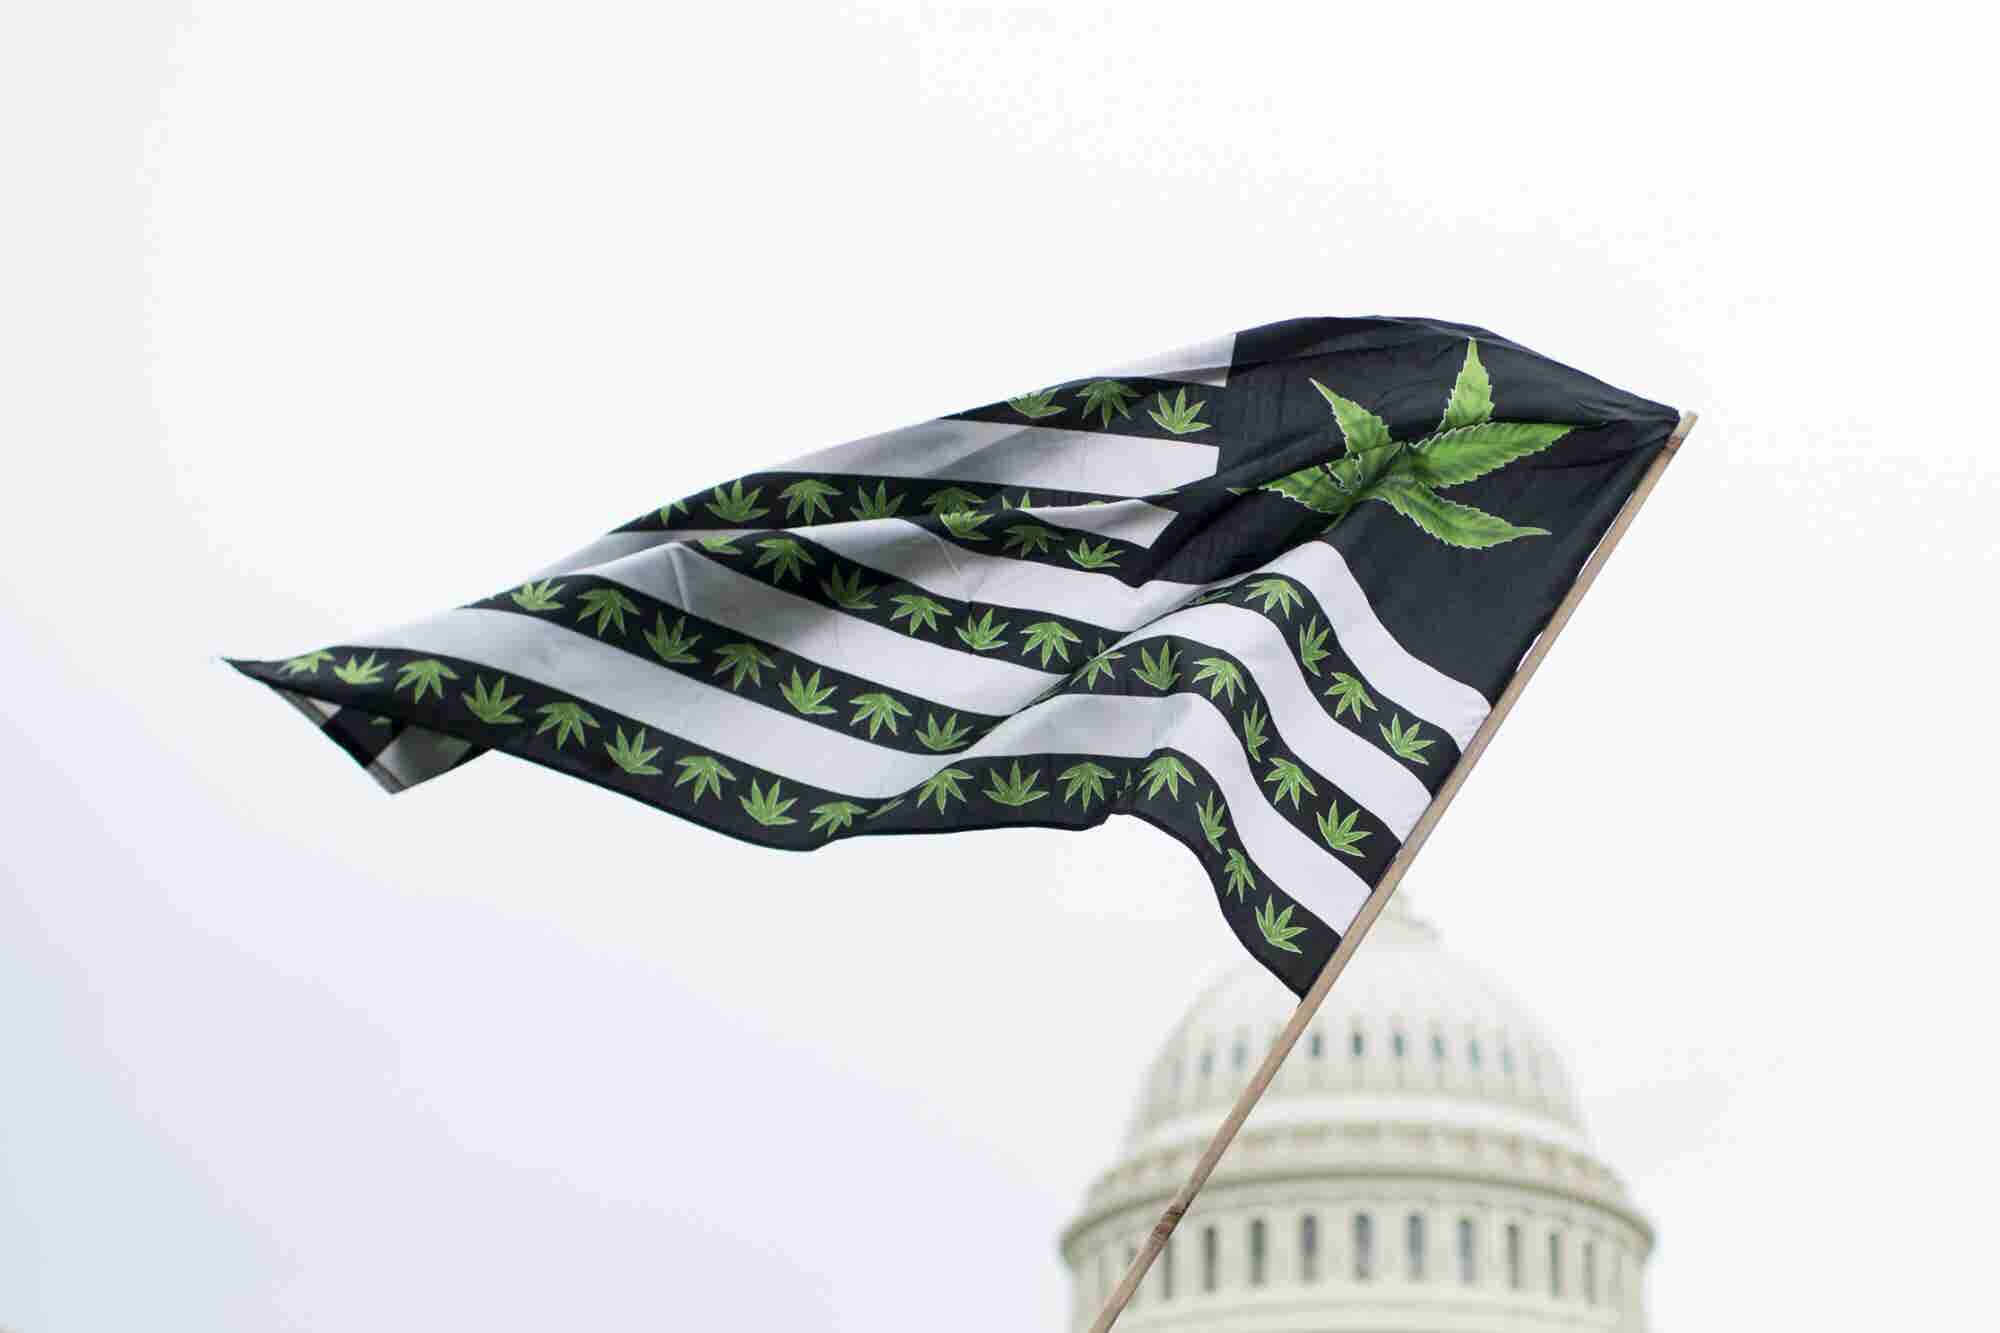 Latest Gallup Poll Finds a Big Majority of Americans Support Legal Marijuana